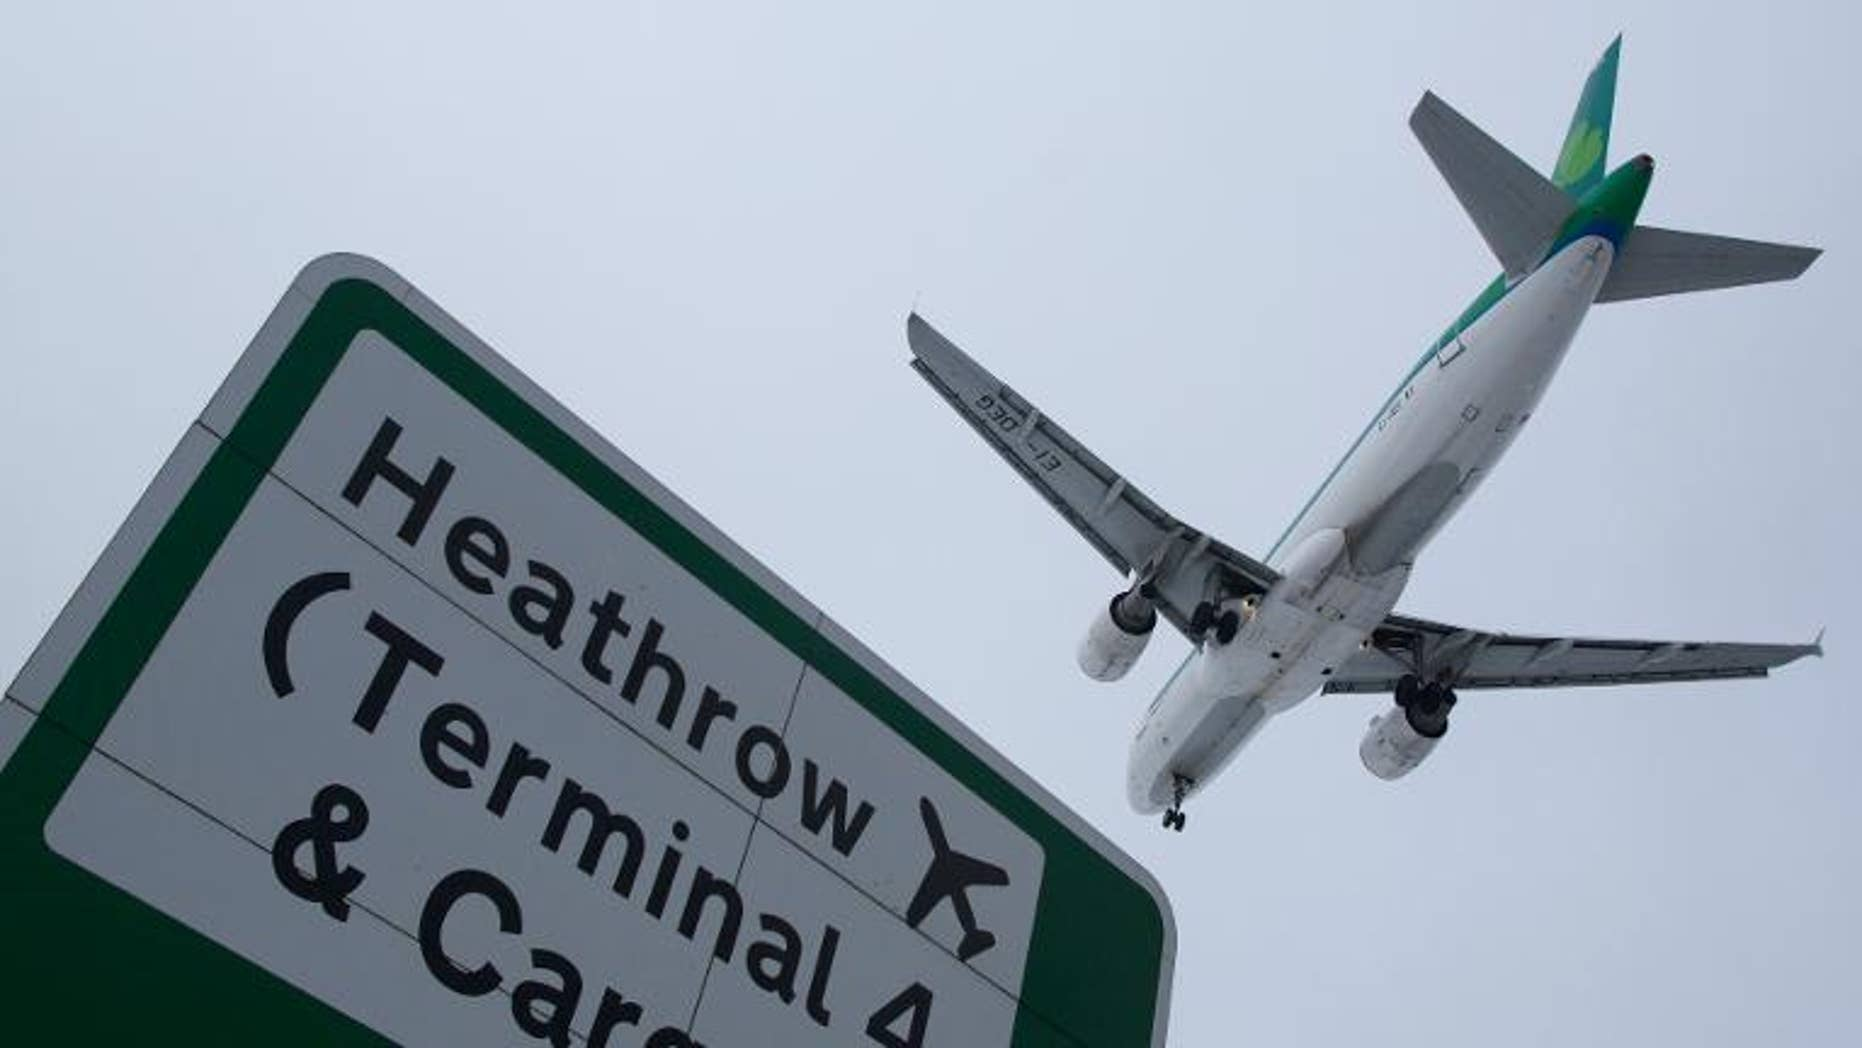 A plane flies in to land at Heathrow airport in west London on January 21, 2013